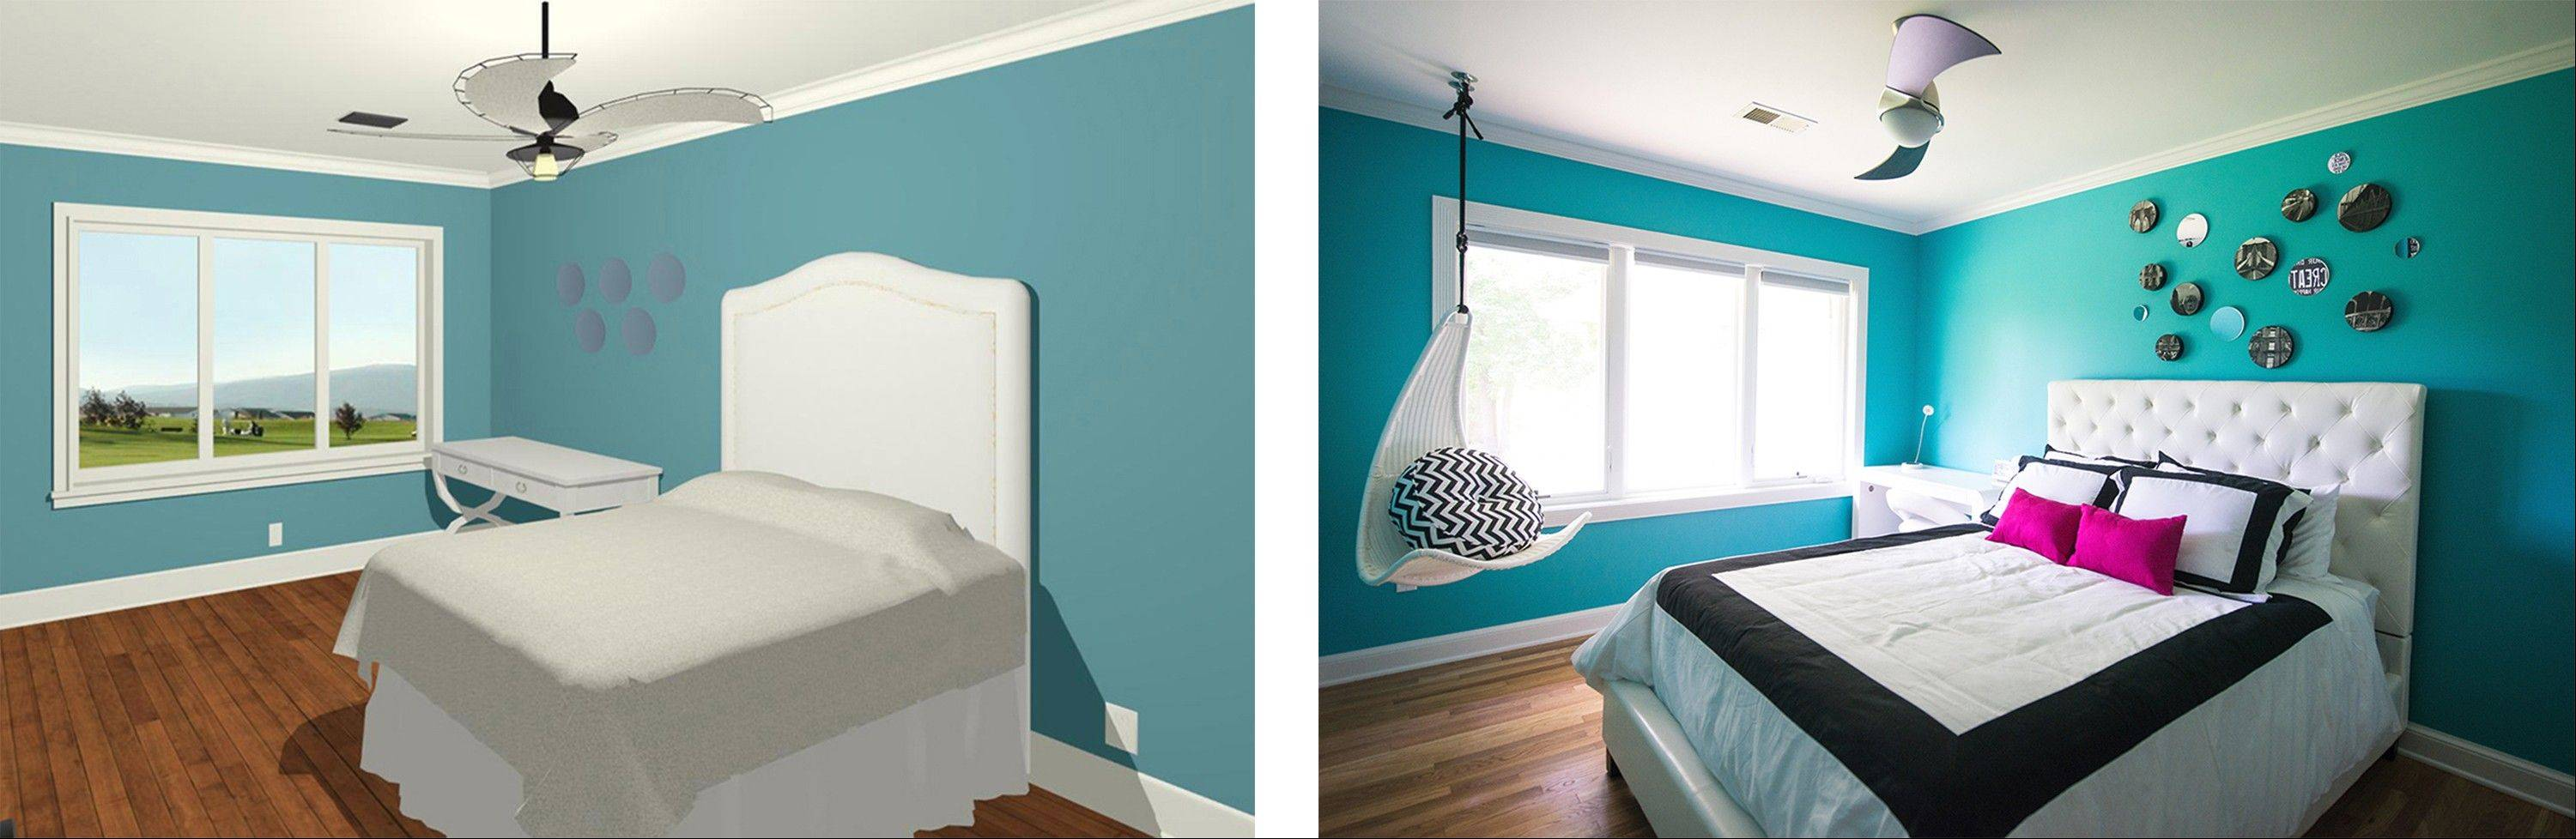 Teddy Wolff/For The Washington Post This 3-D image, left, helped Julie Friedman envision the finished bedroom, right.